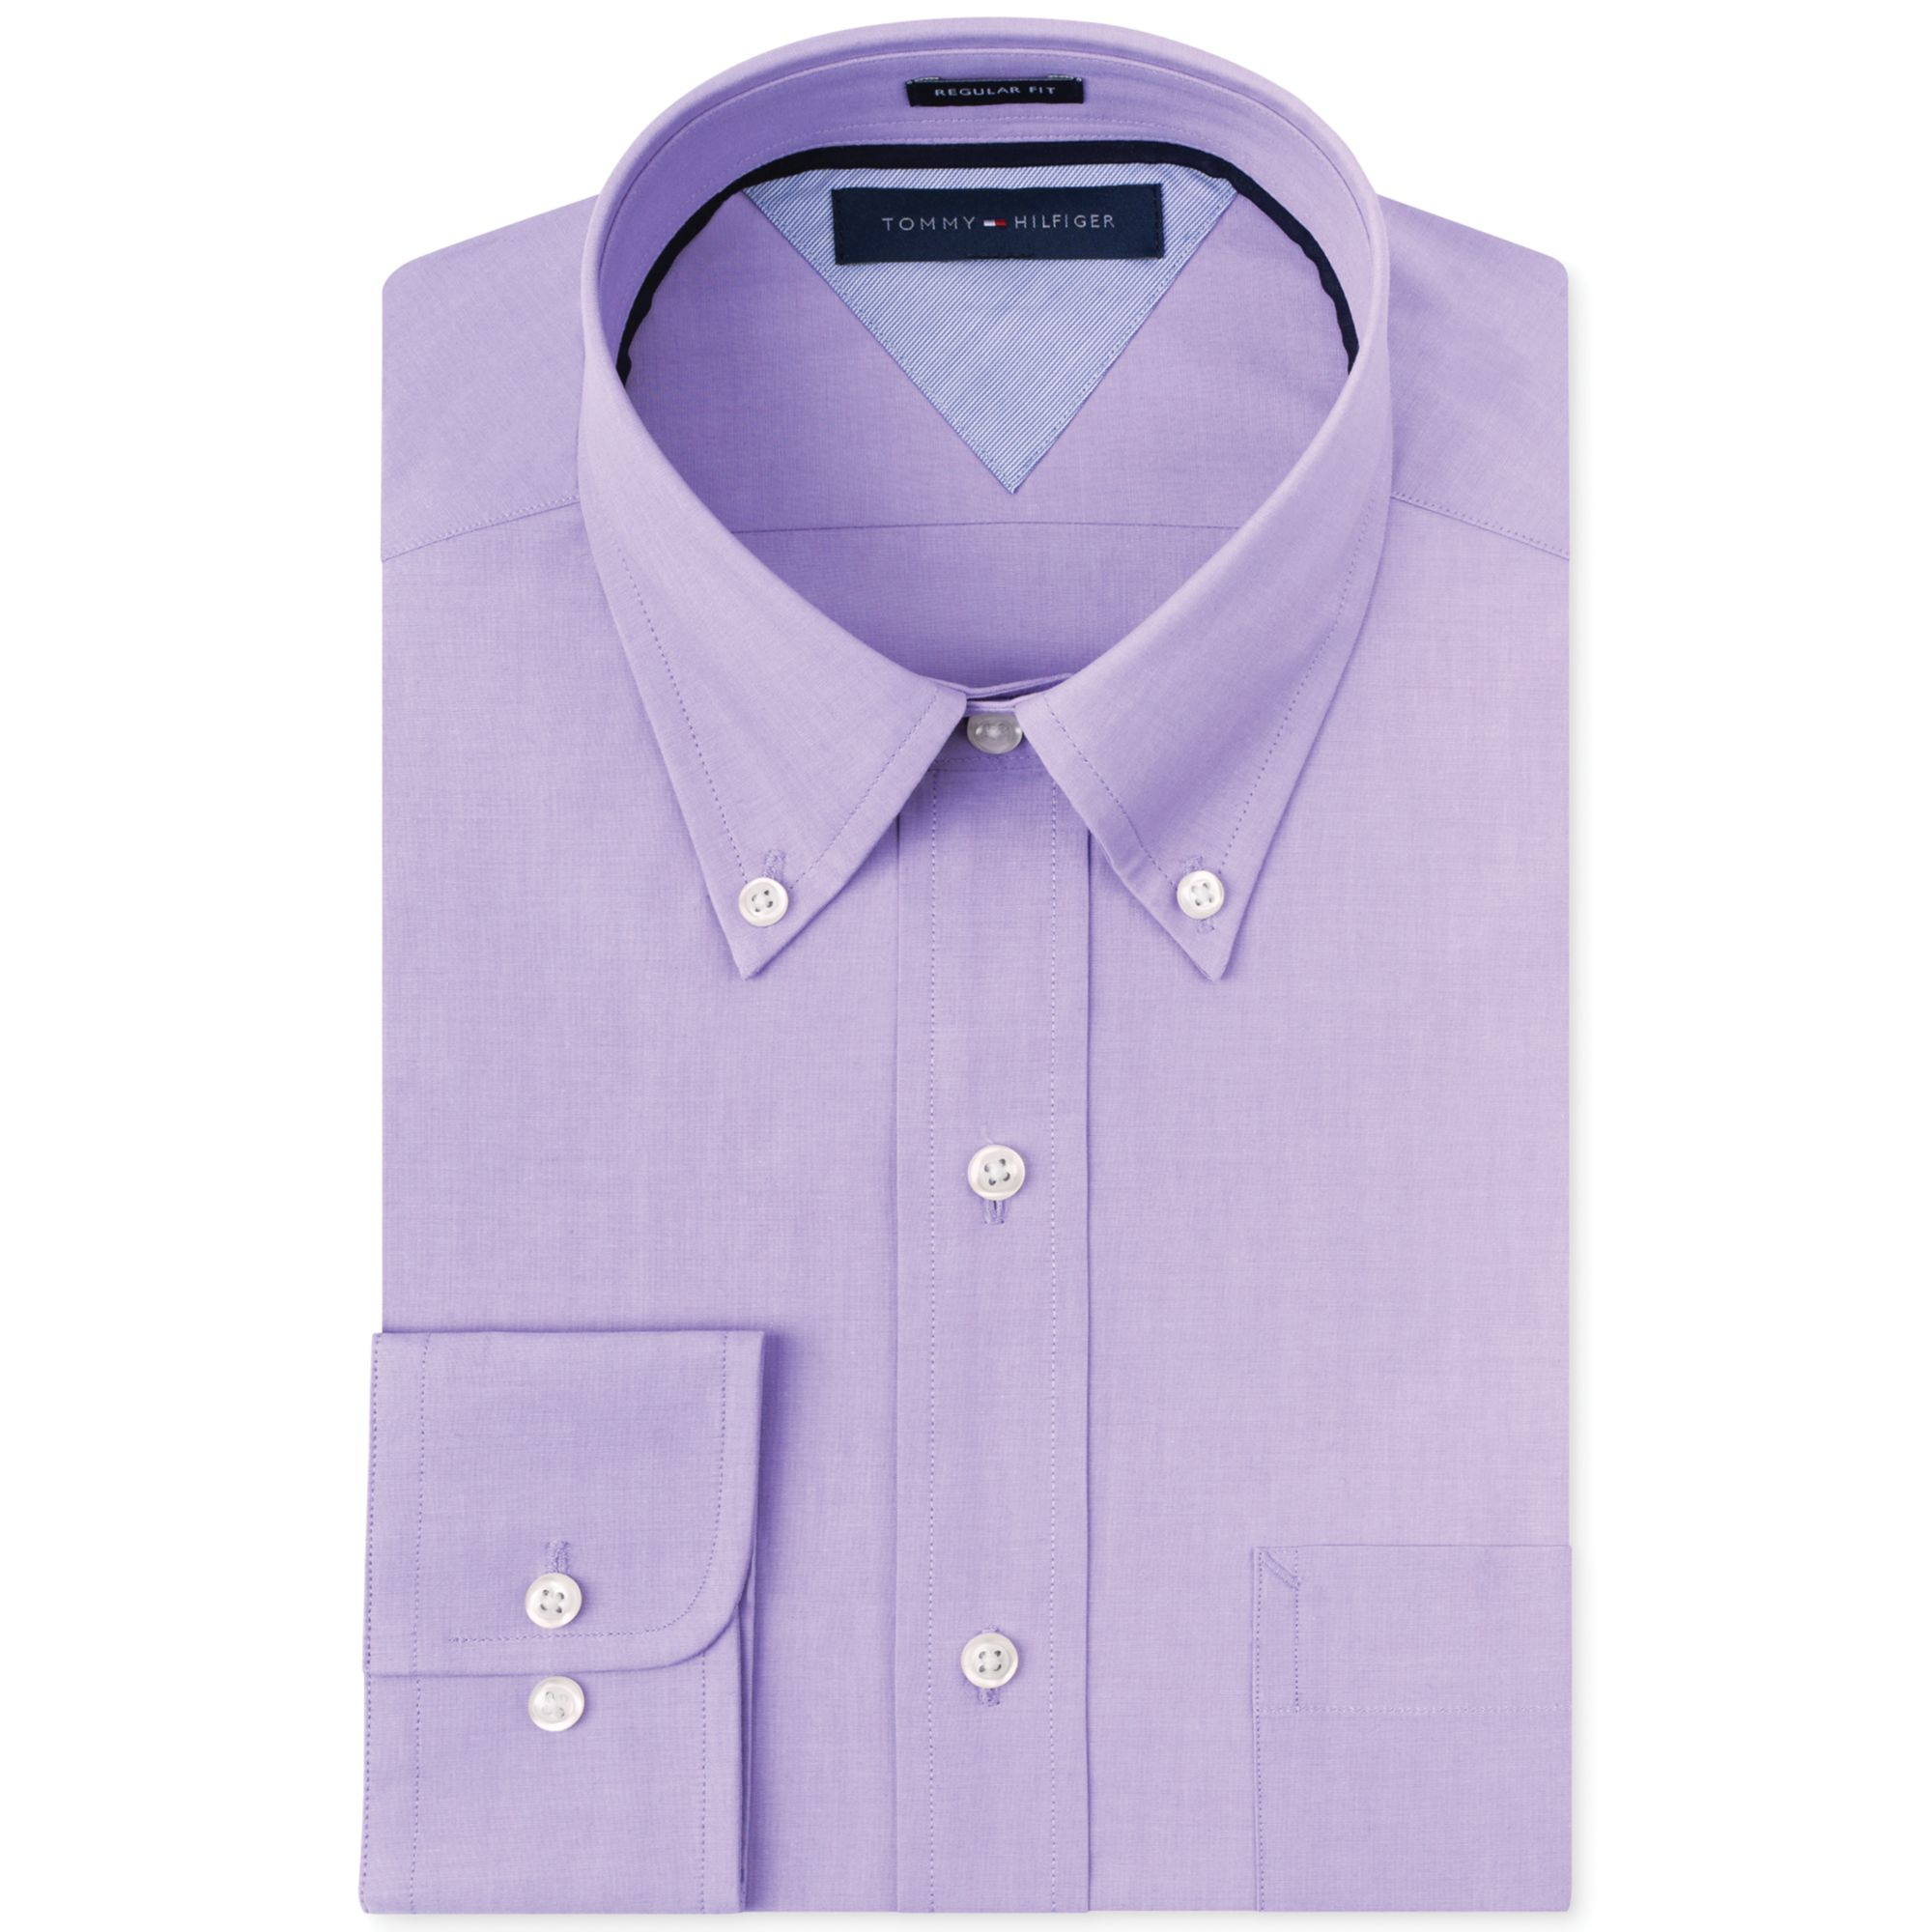 Lyst Tommy Hilfiger Solid Dress Shirt In Purple For Men